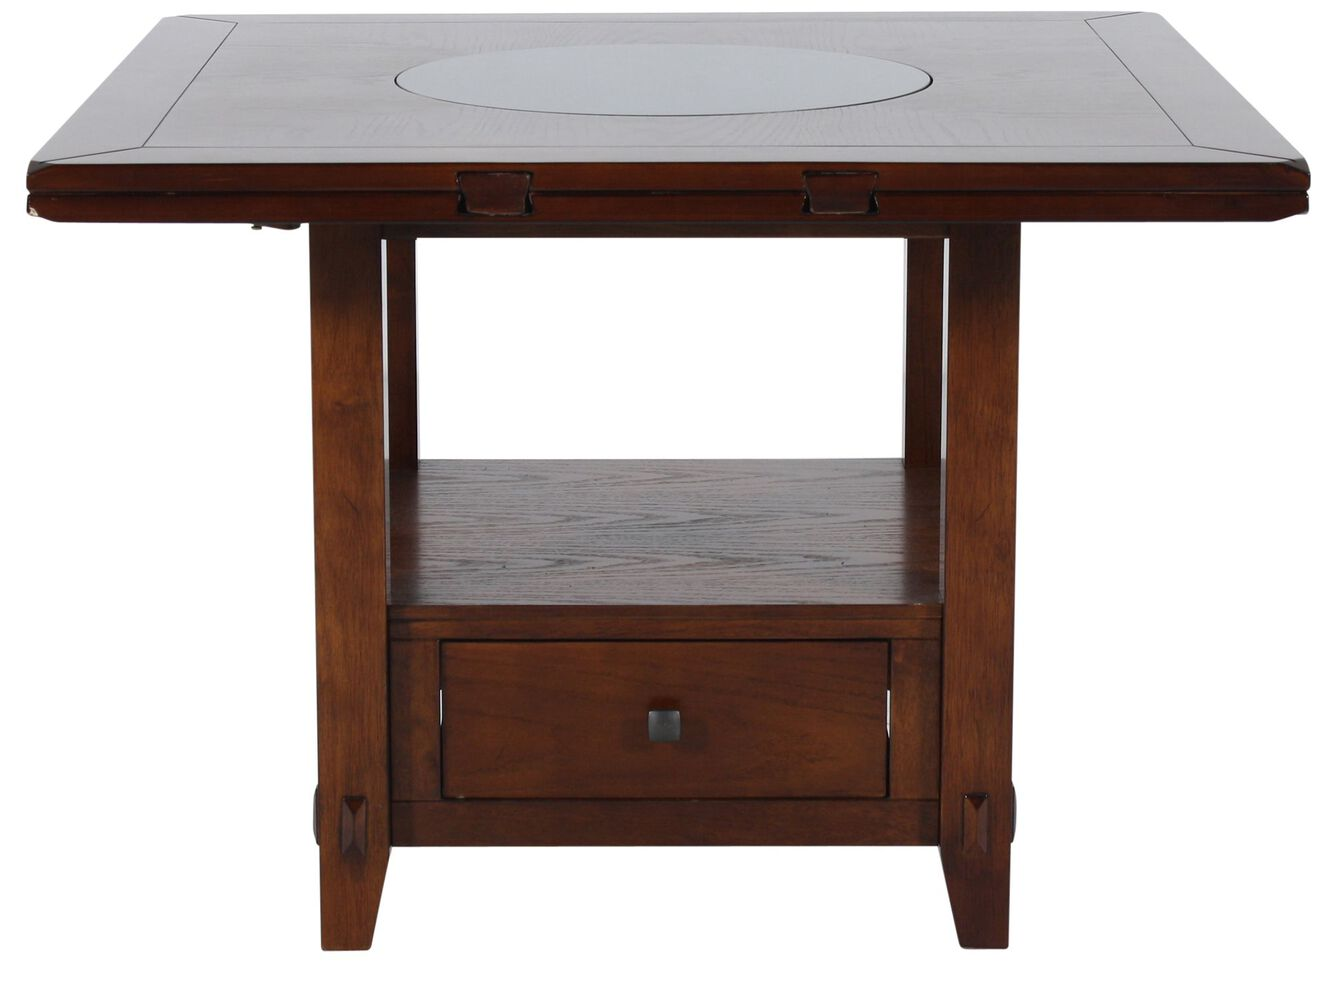 Winners Only Zahara Drop Leaf Table Mathis Brothers  : WIN DZH4260 3 from www.mathisbrothers.com size 1333 x 1000 jpeg 67kB